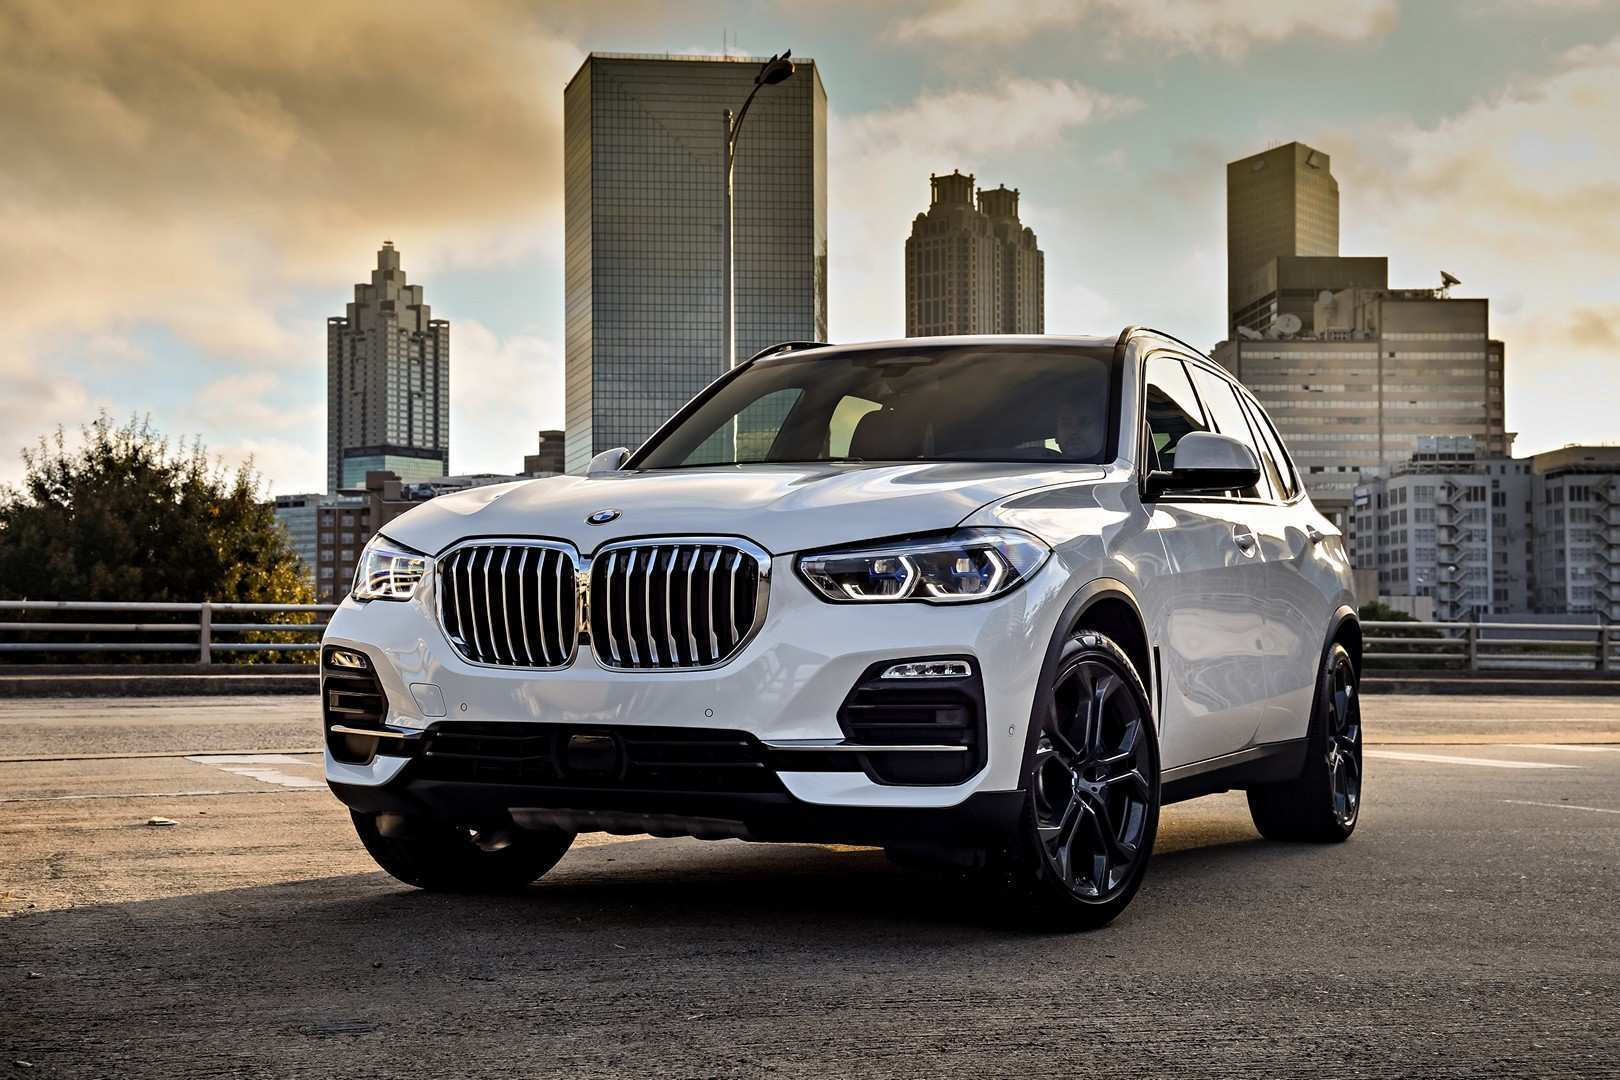 72 A 2020 Bmw X5 Hybrid Price And Release Date